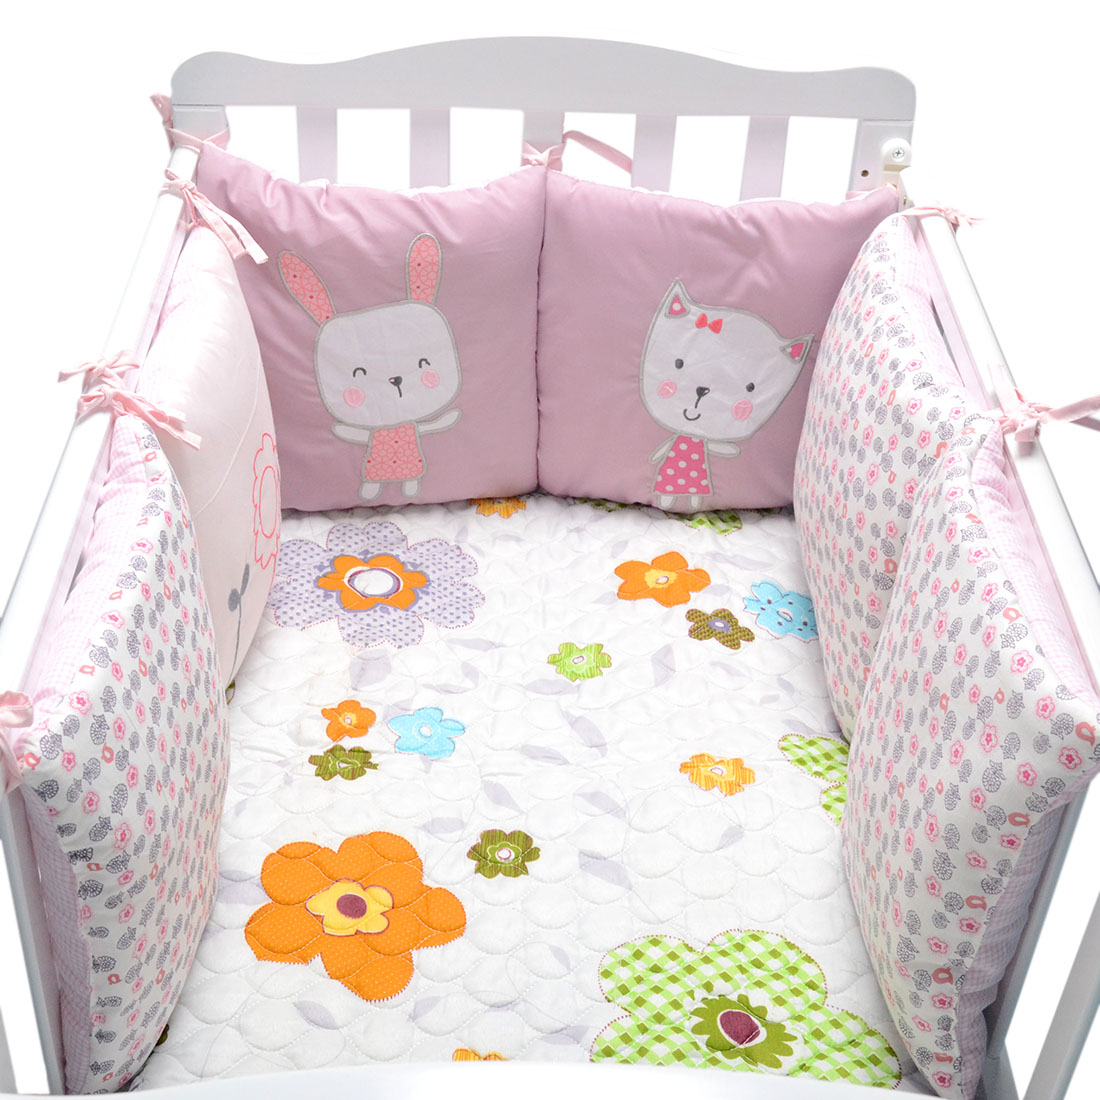 6pcs Baby Bed Bumpers Cotton Newborn Bed Crib Bumper Bedding Around Protection Multi-function Back Cushion Pillow Crib Bumpers